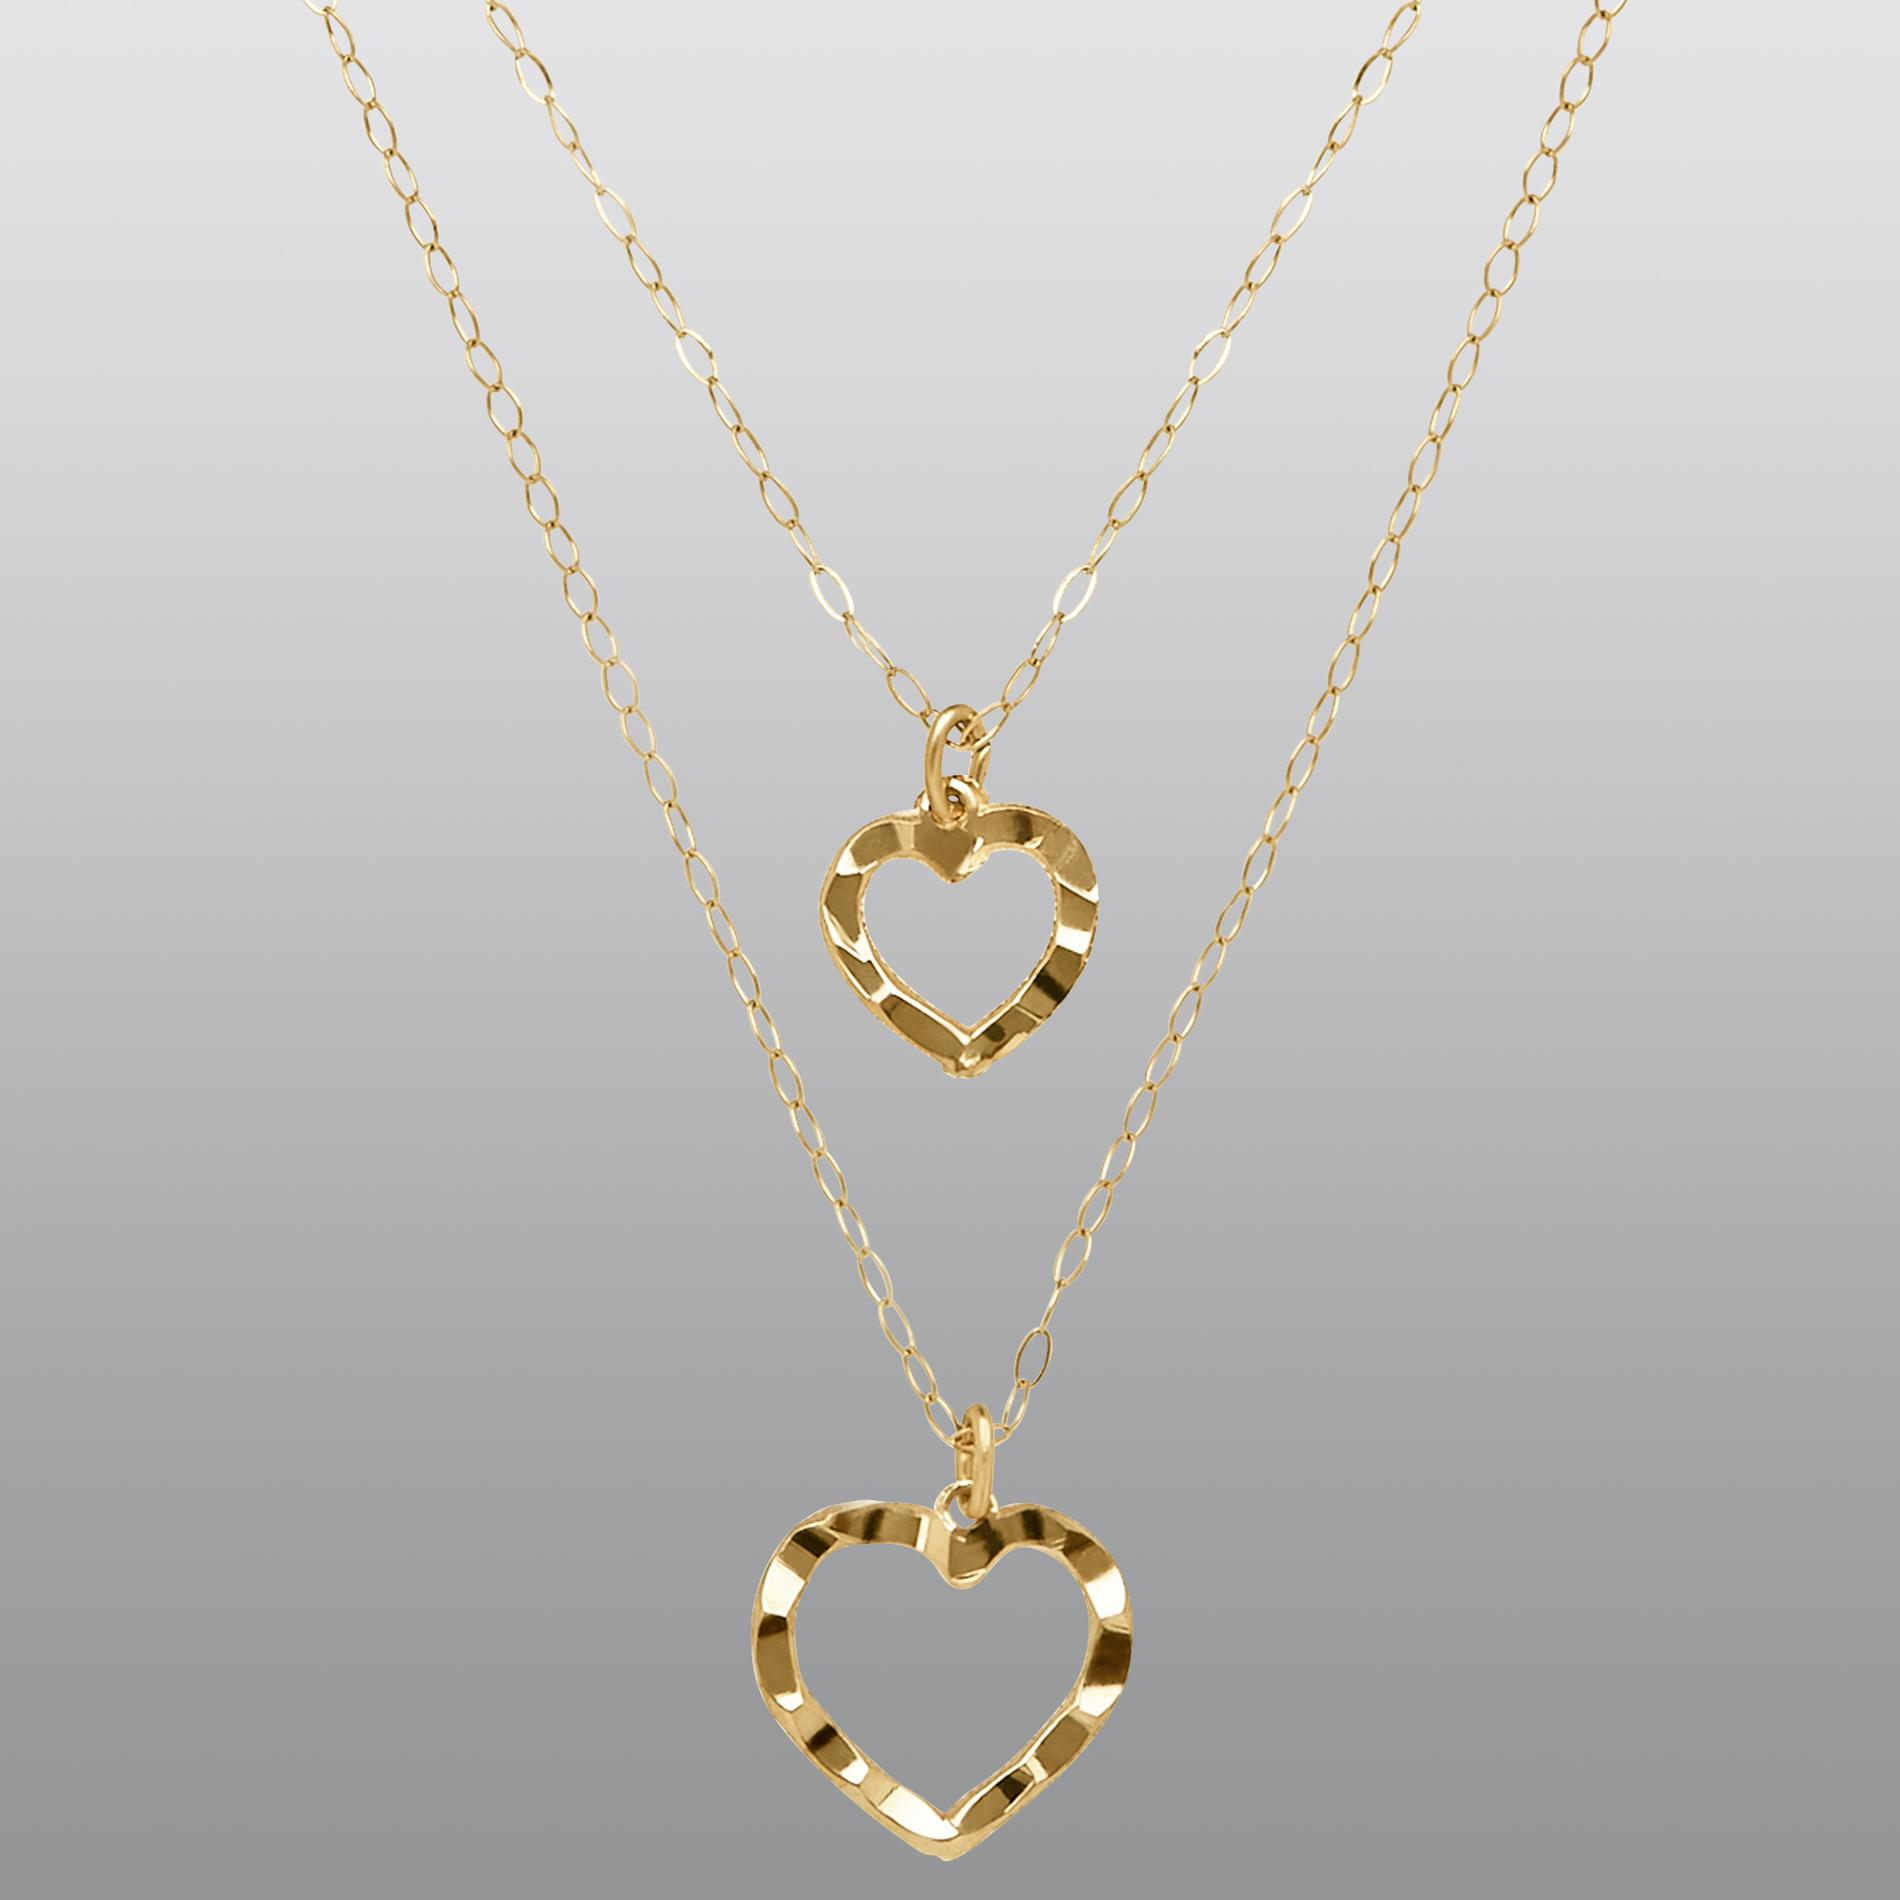 10k Yellow Gold Two Layered Hearts Necklace